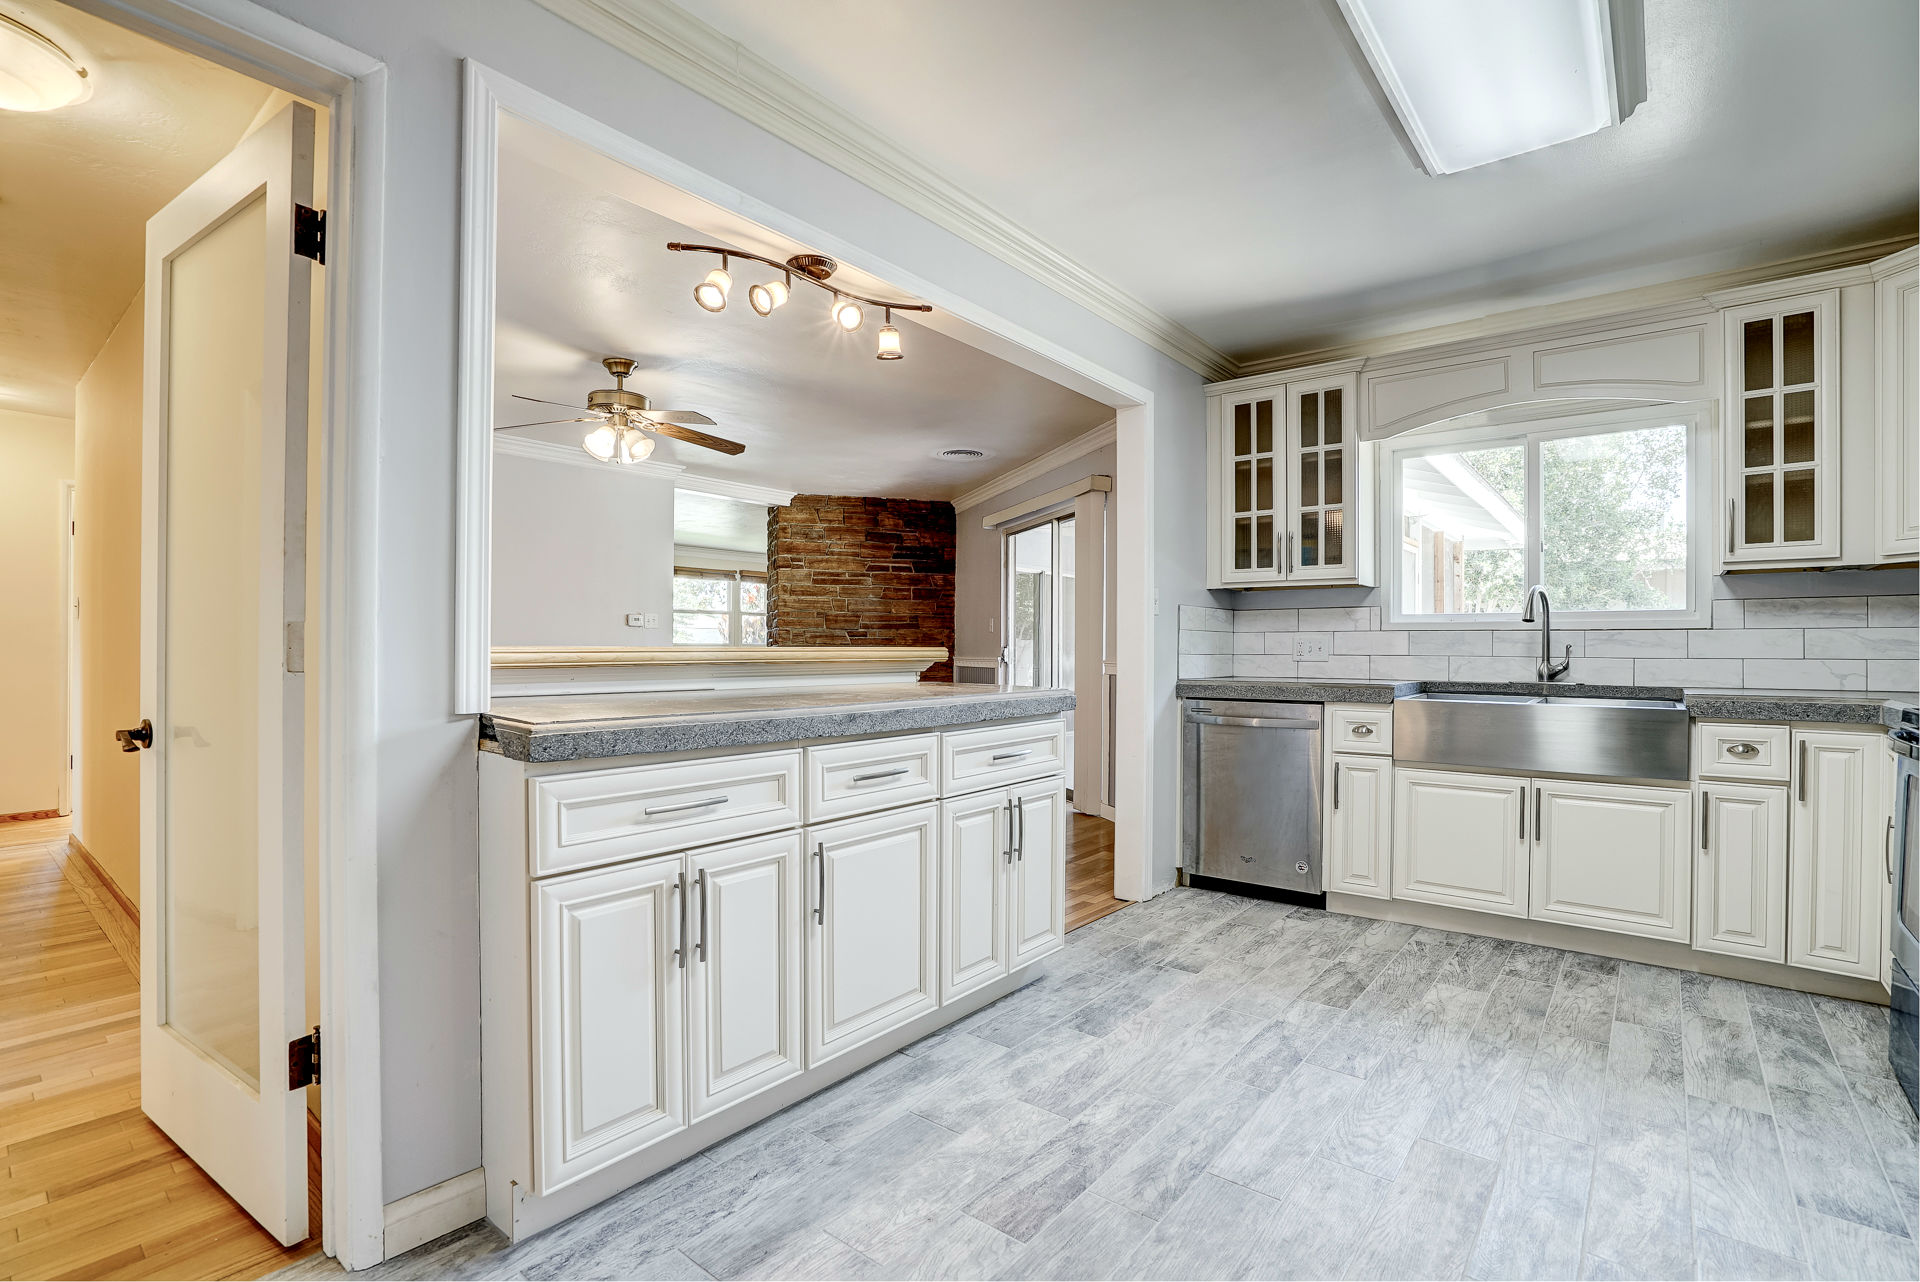 Remodeled Kitchen With Subway Tile Back Splash. Frosted Glass Door Leading  To The Hallway With